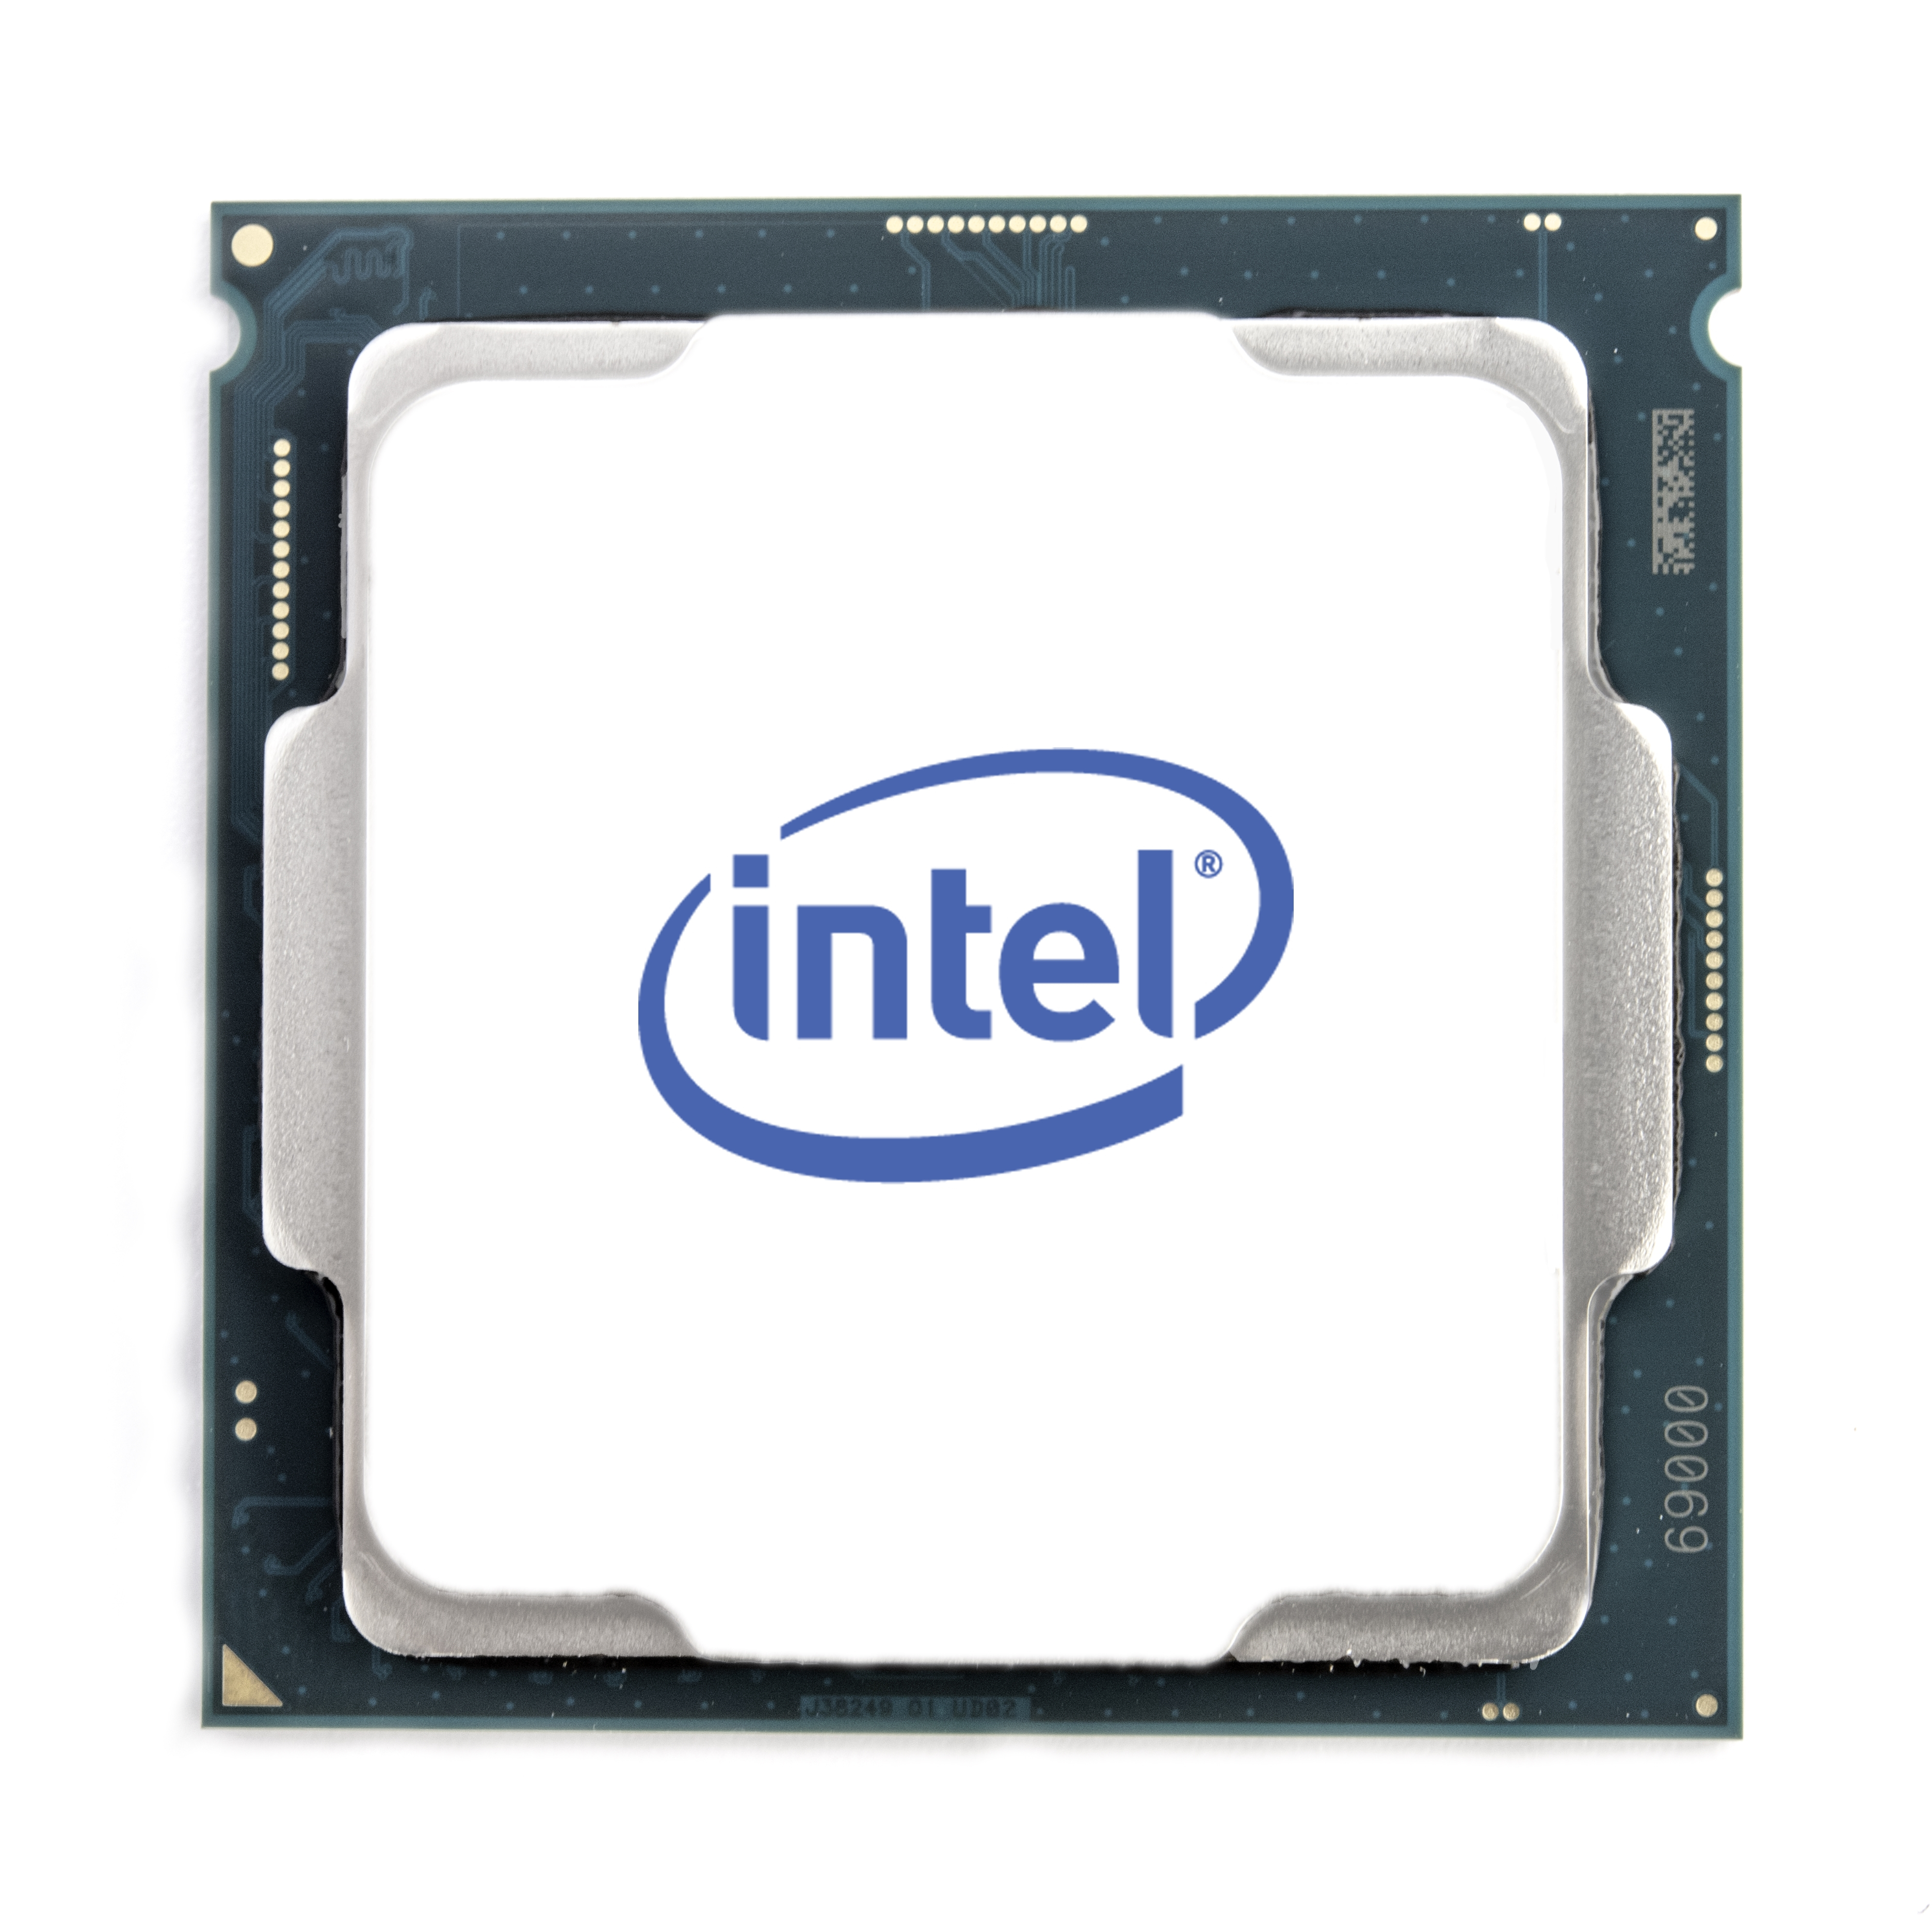 Intel Core i5-9400F processor 2.9 GHz Box 9 MB Smart Cache